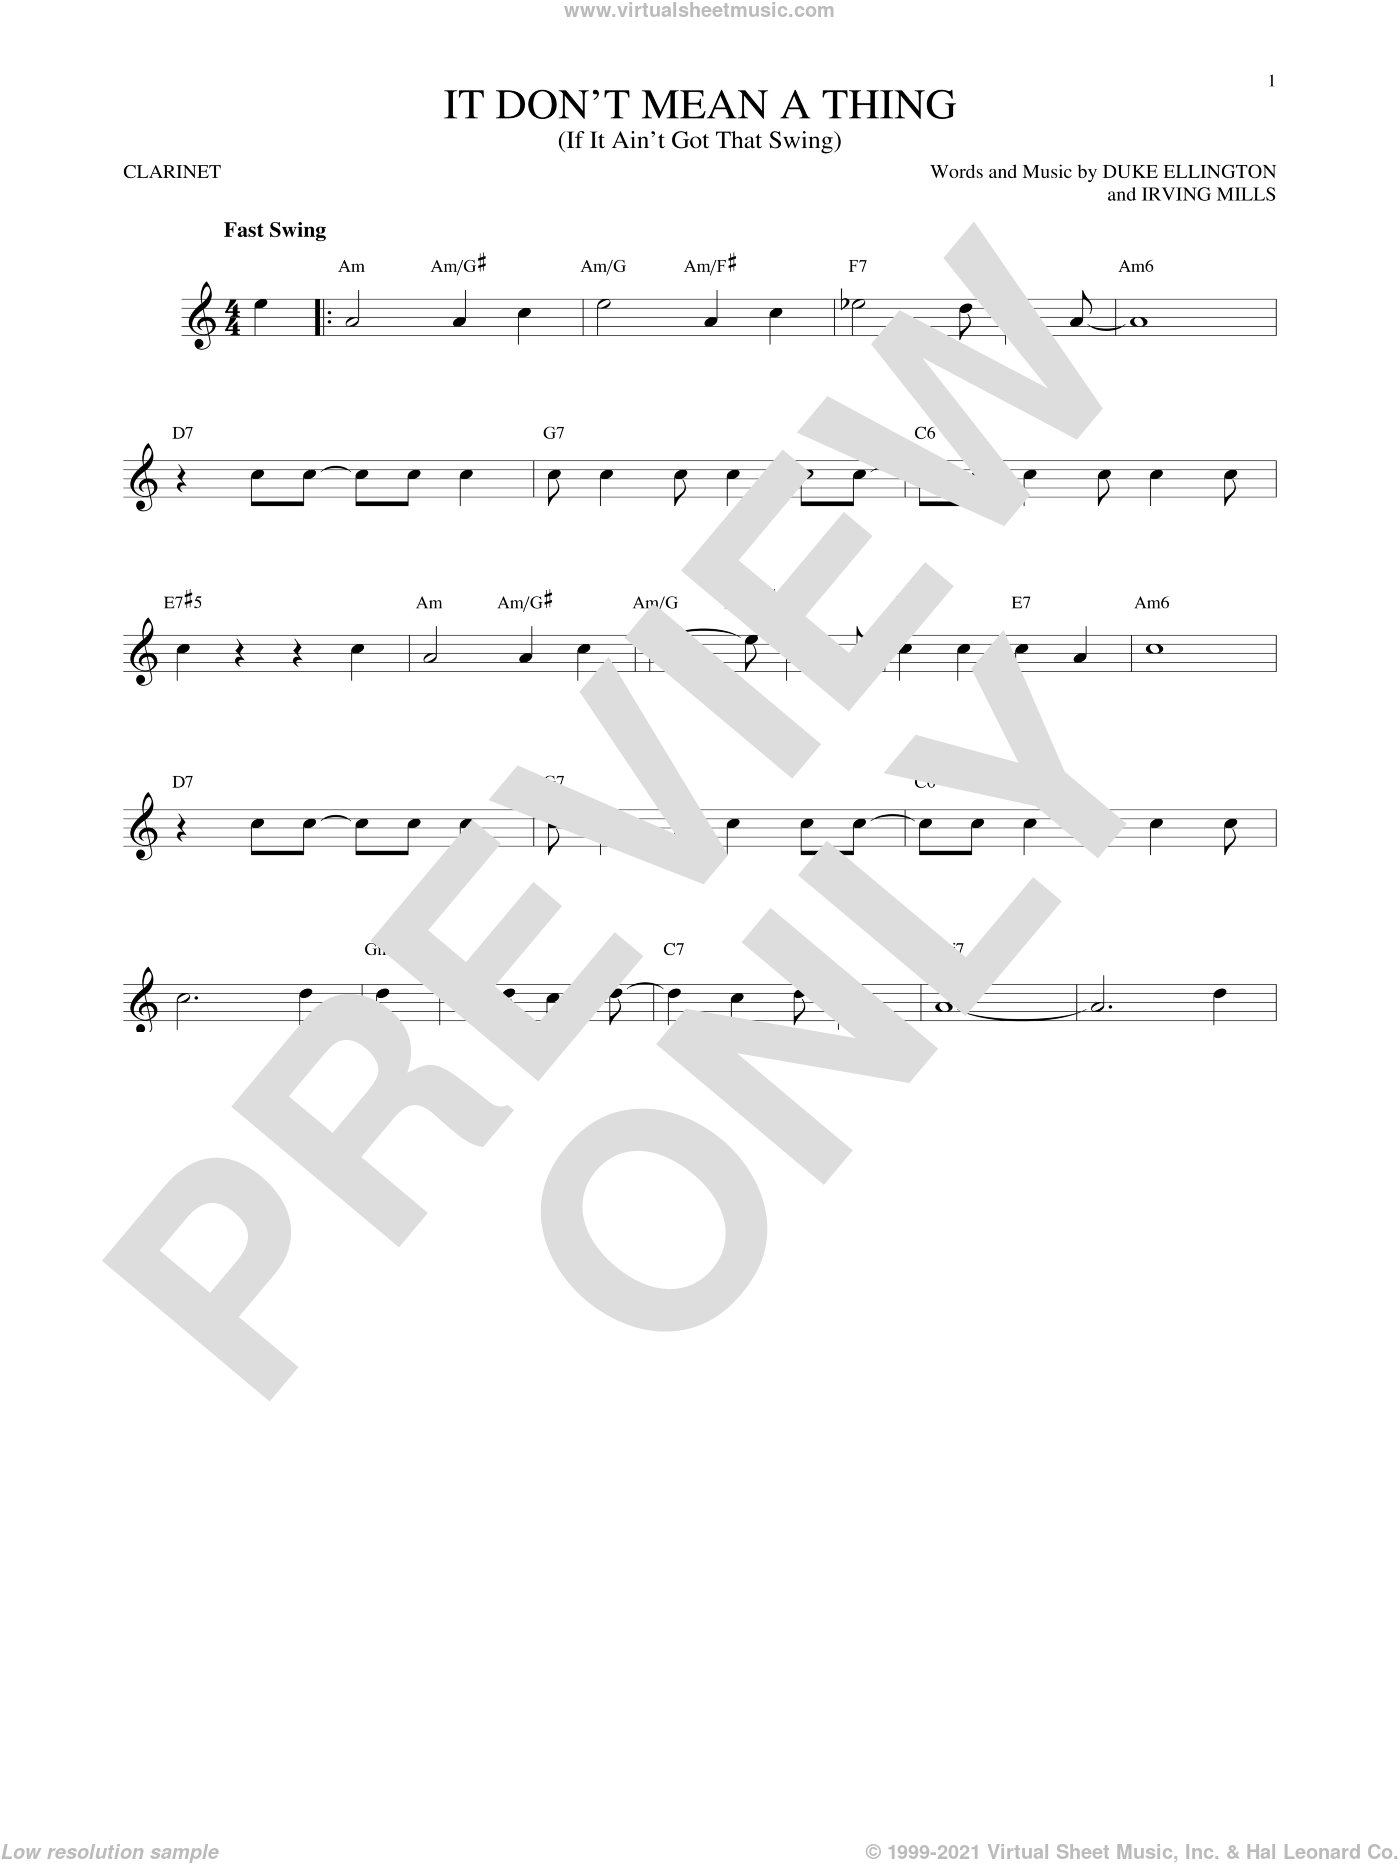 It Don't Mean A Thing (If It Ain't Got That Swing) sheet music for clarinet solo by Duke Ellington and Irving Mills. Score Image Preview.